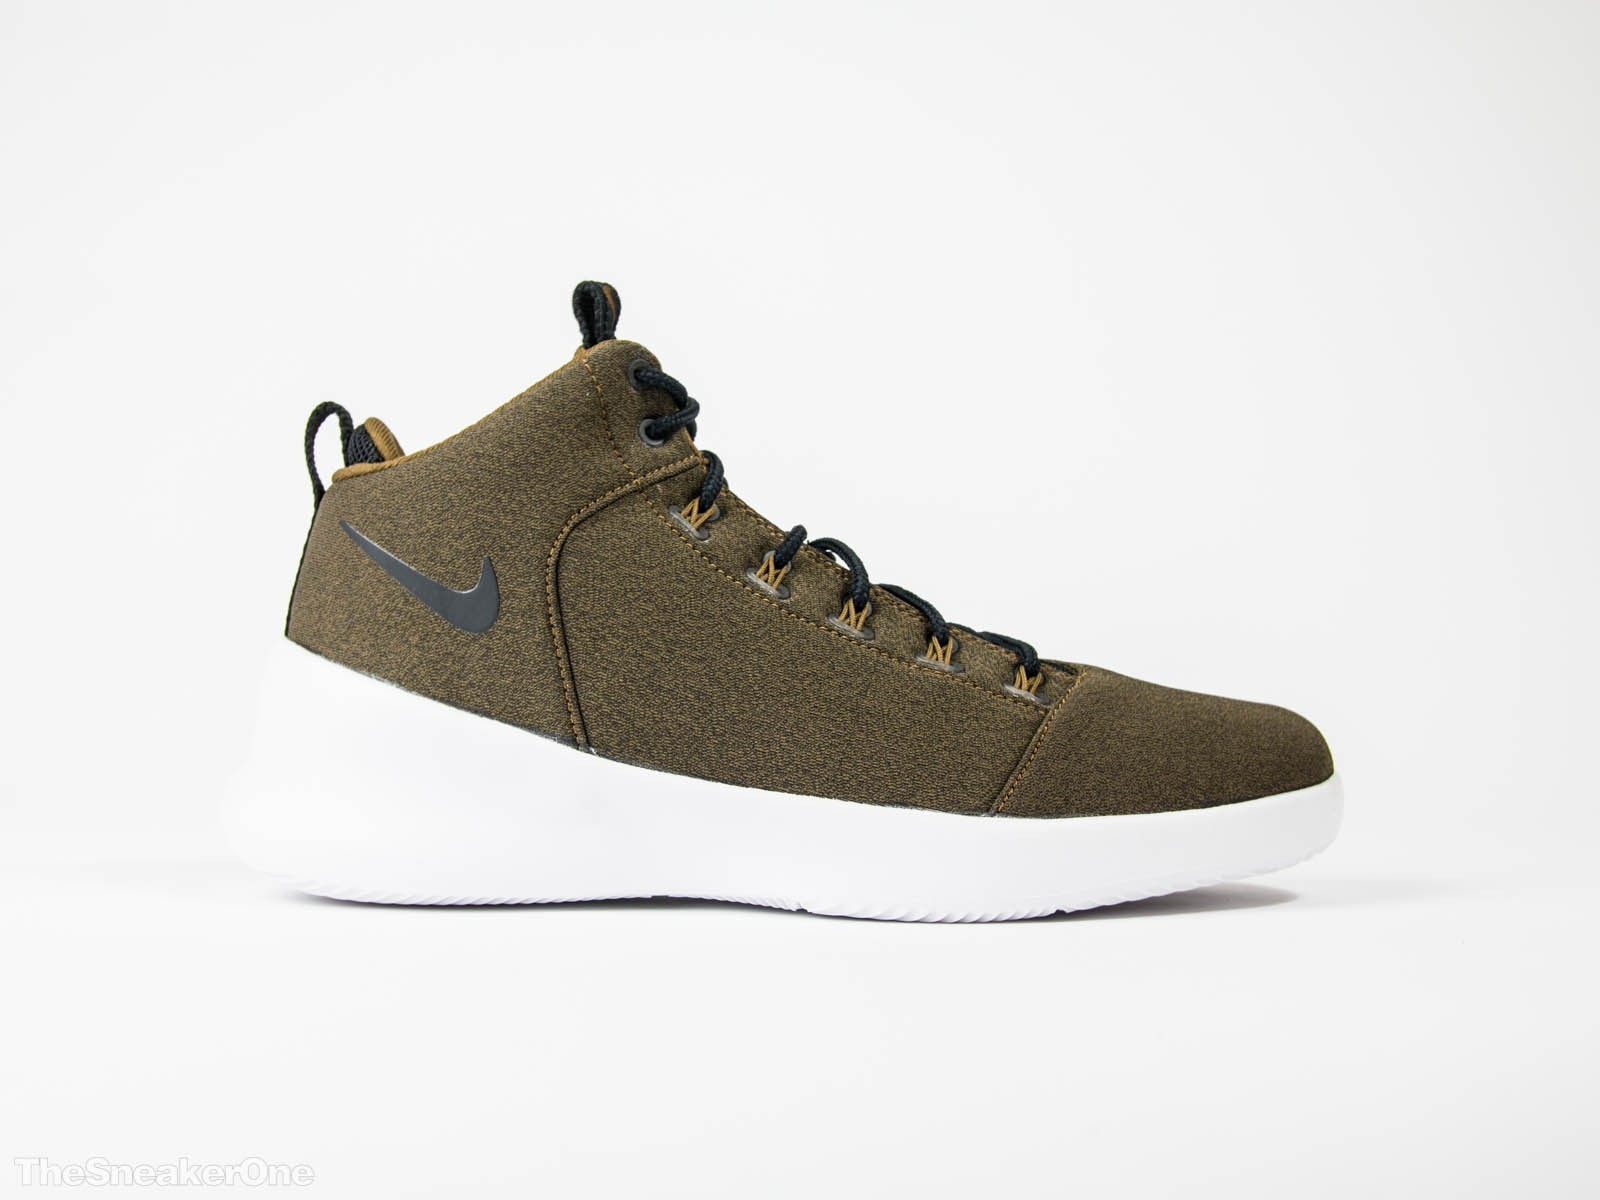 best website ac278 007f6 nike-hyperfr3sh-mid-759996-200.jpg